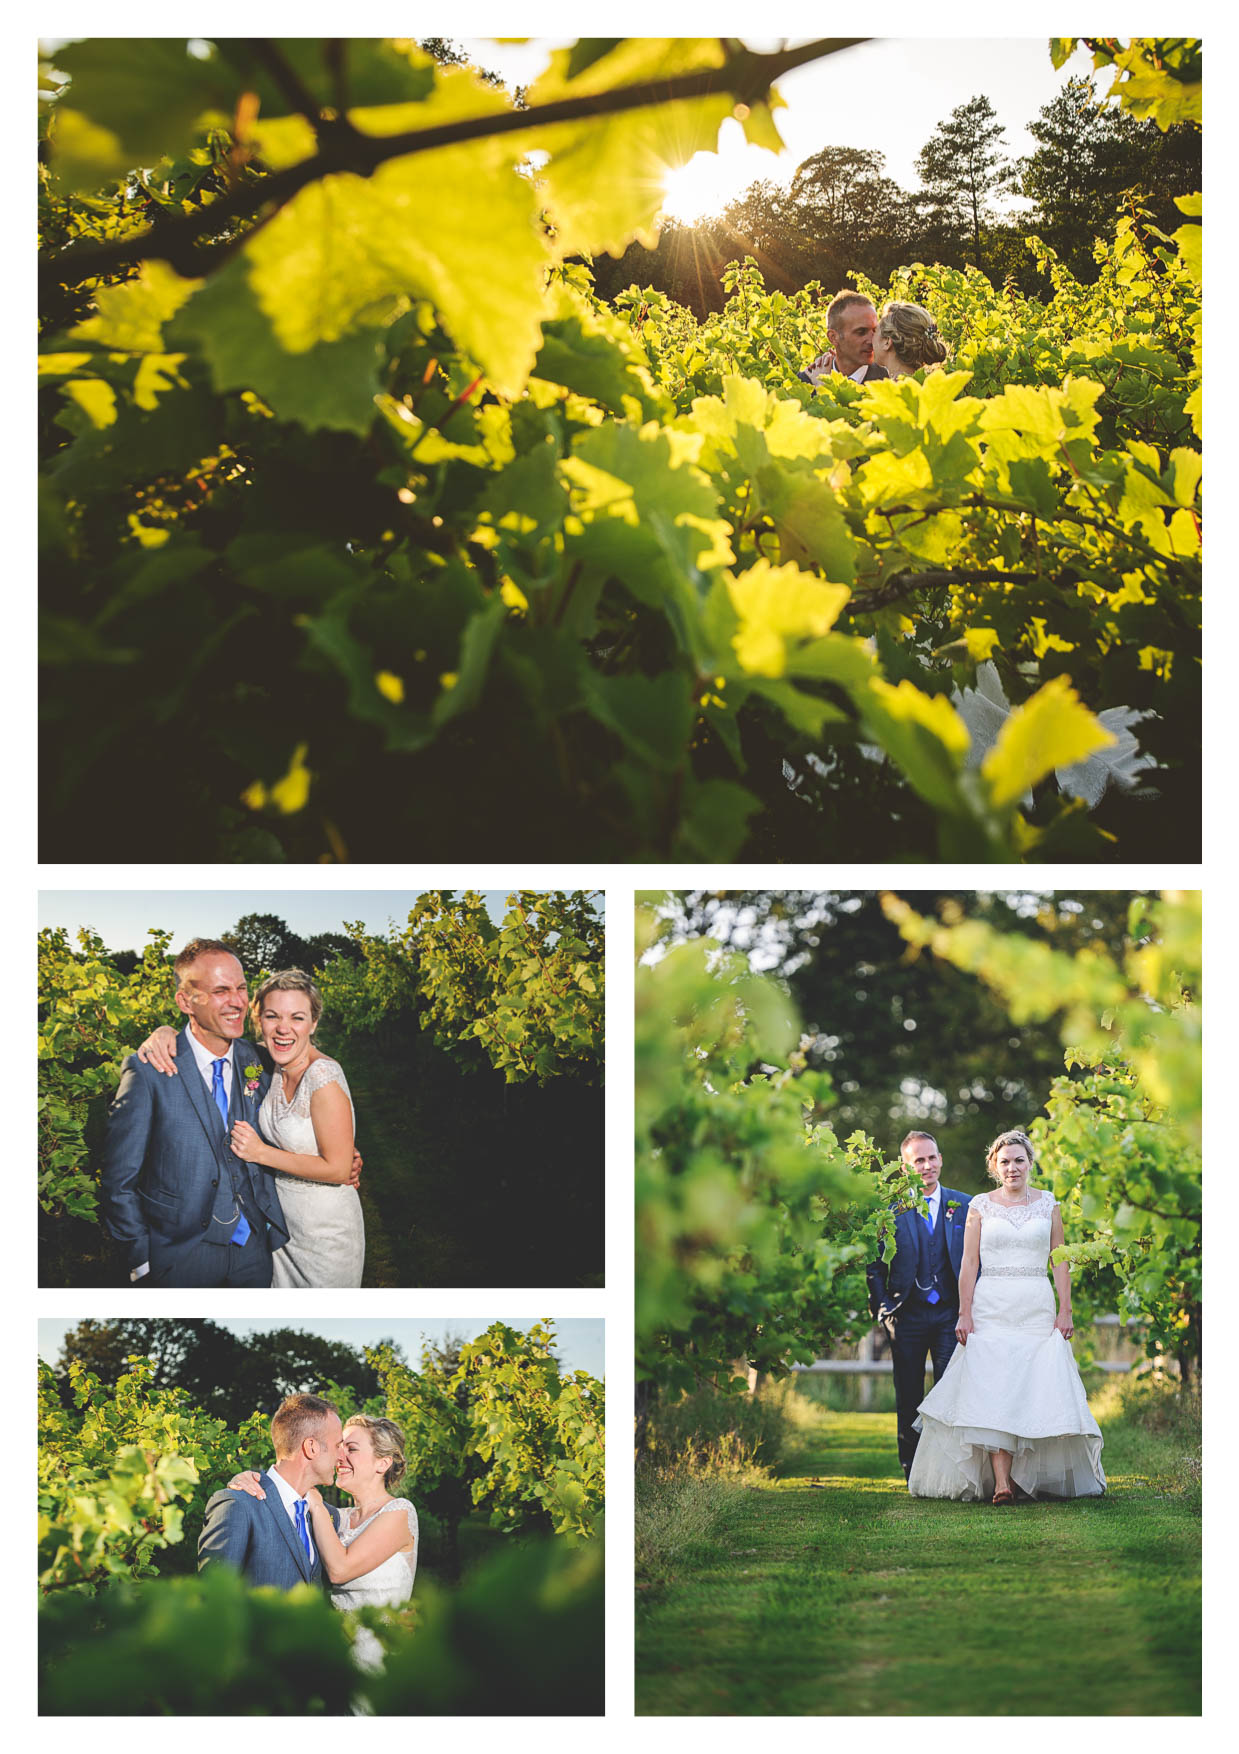 Photographs of a bride and groom on their wedding day amongst the vines at llanerch vineyard enjoying some couple time in beautiful evening sunset